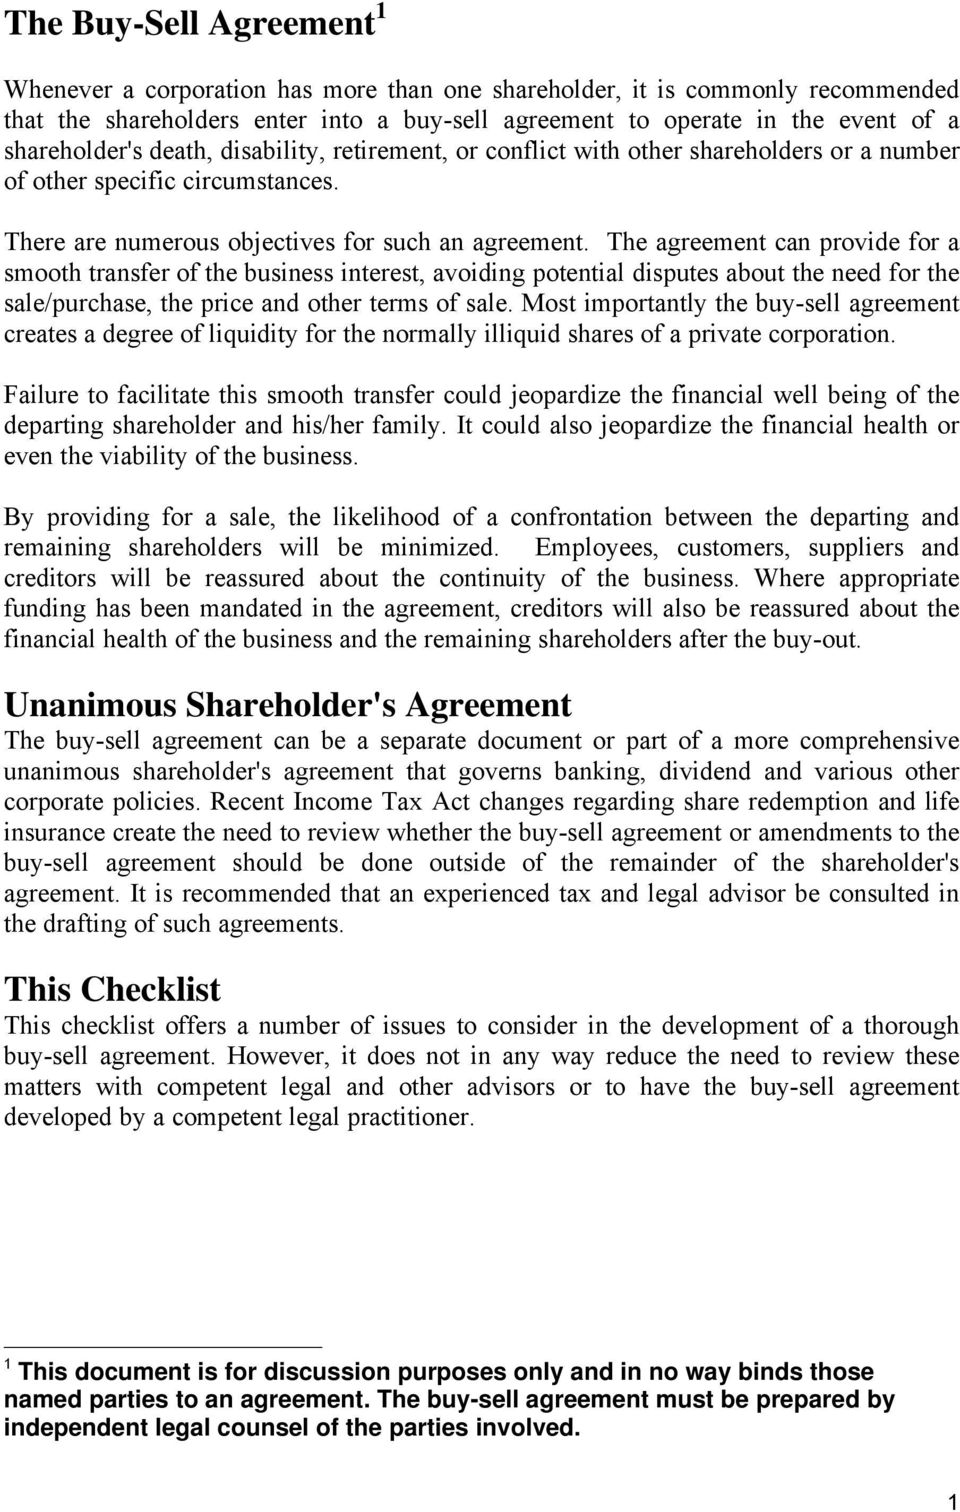 Buy Sell Agreement Planning Checklist Pdf